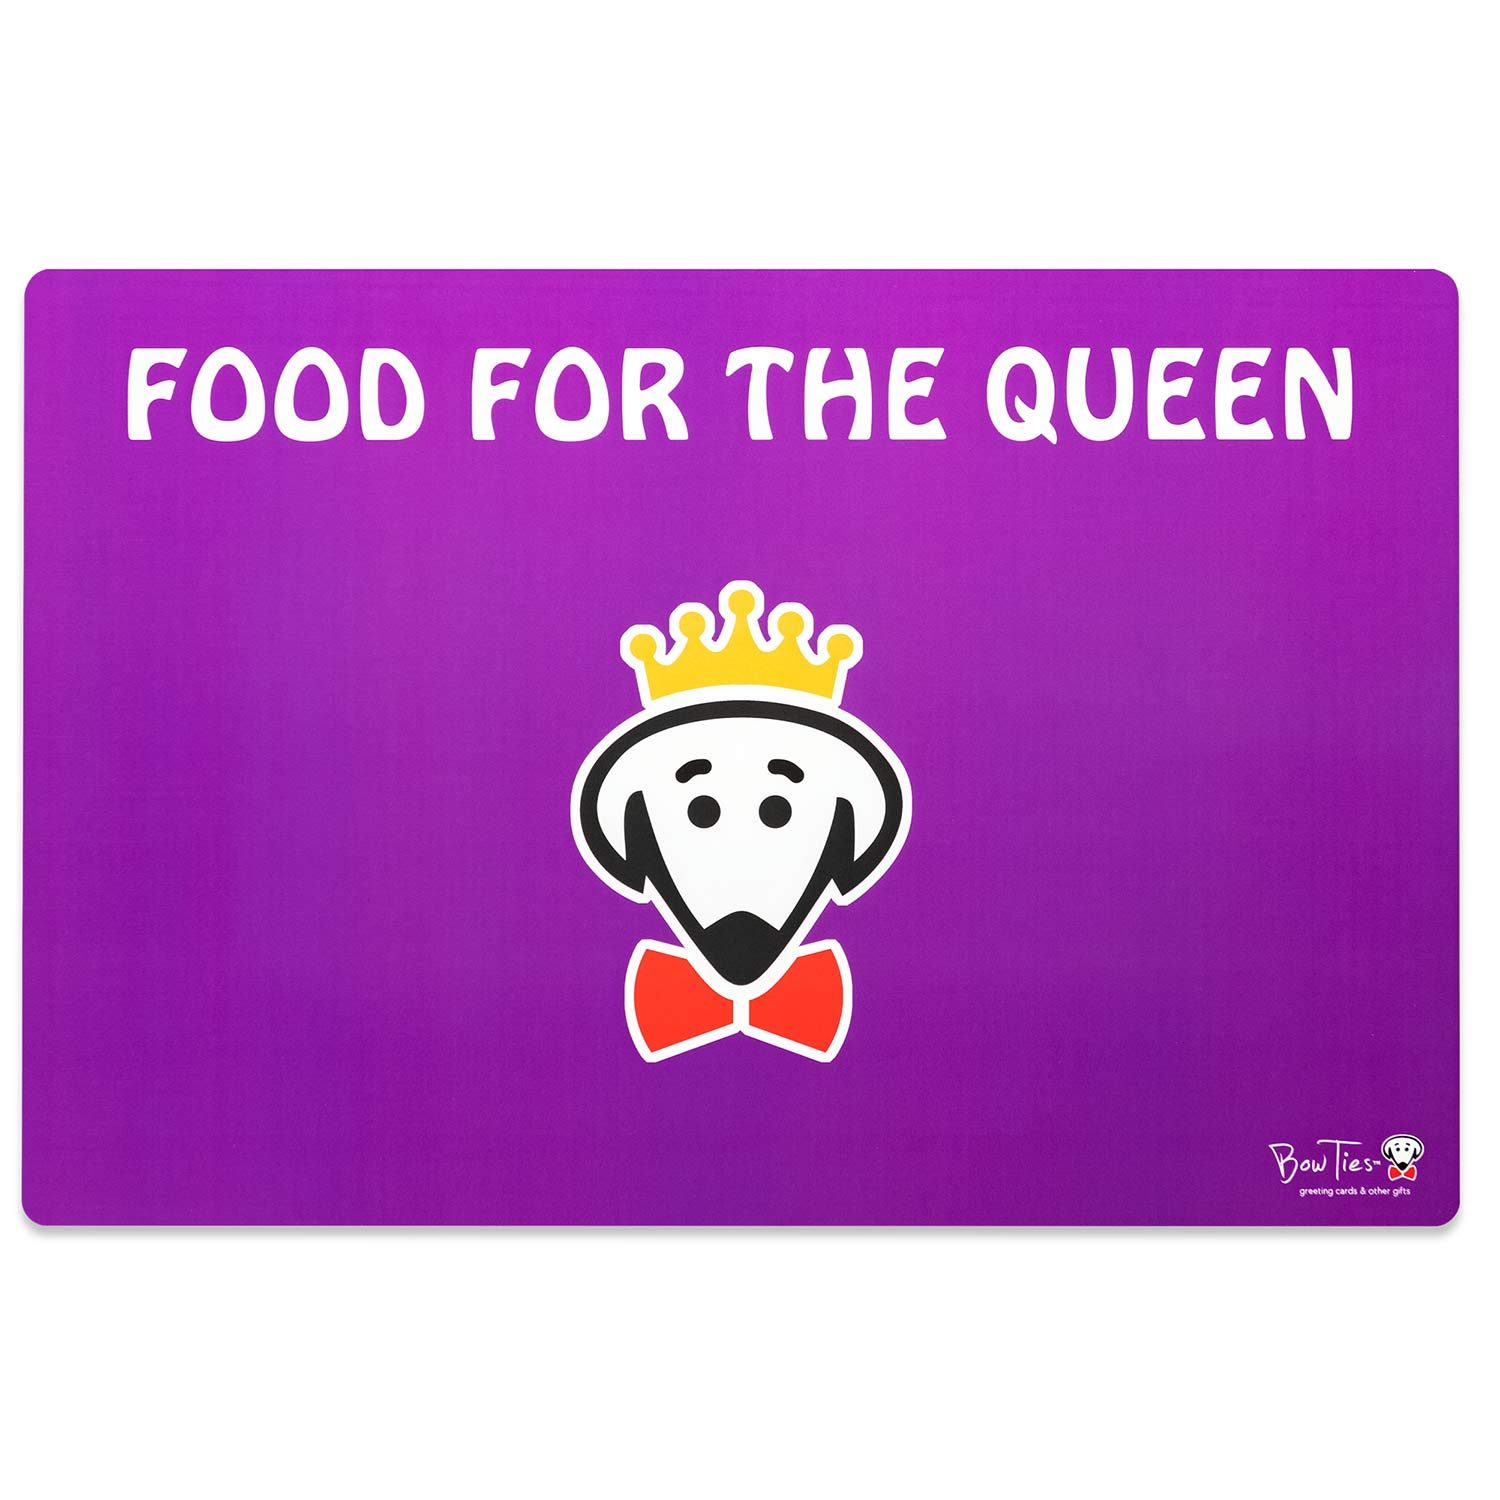 The Queen Dines Here pet mat (Food for the Queen on back) by Beau Tyler